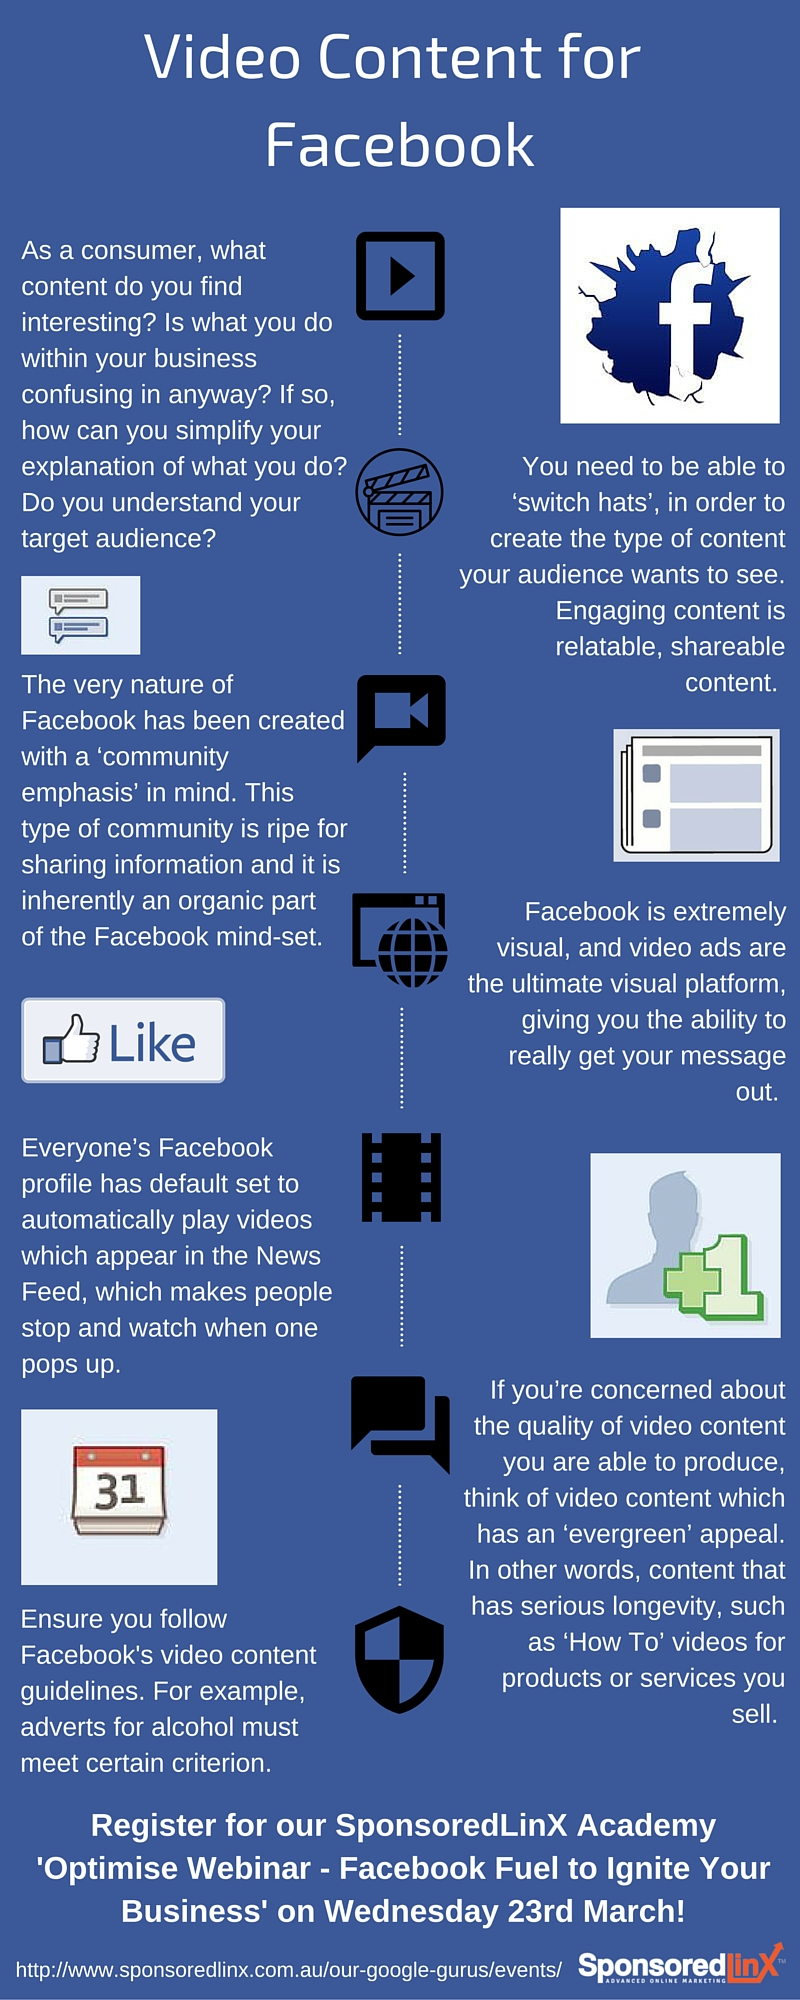 Video Content for Facebook Infographic #2